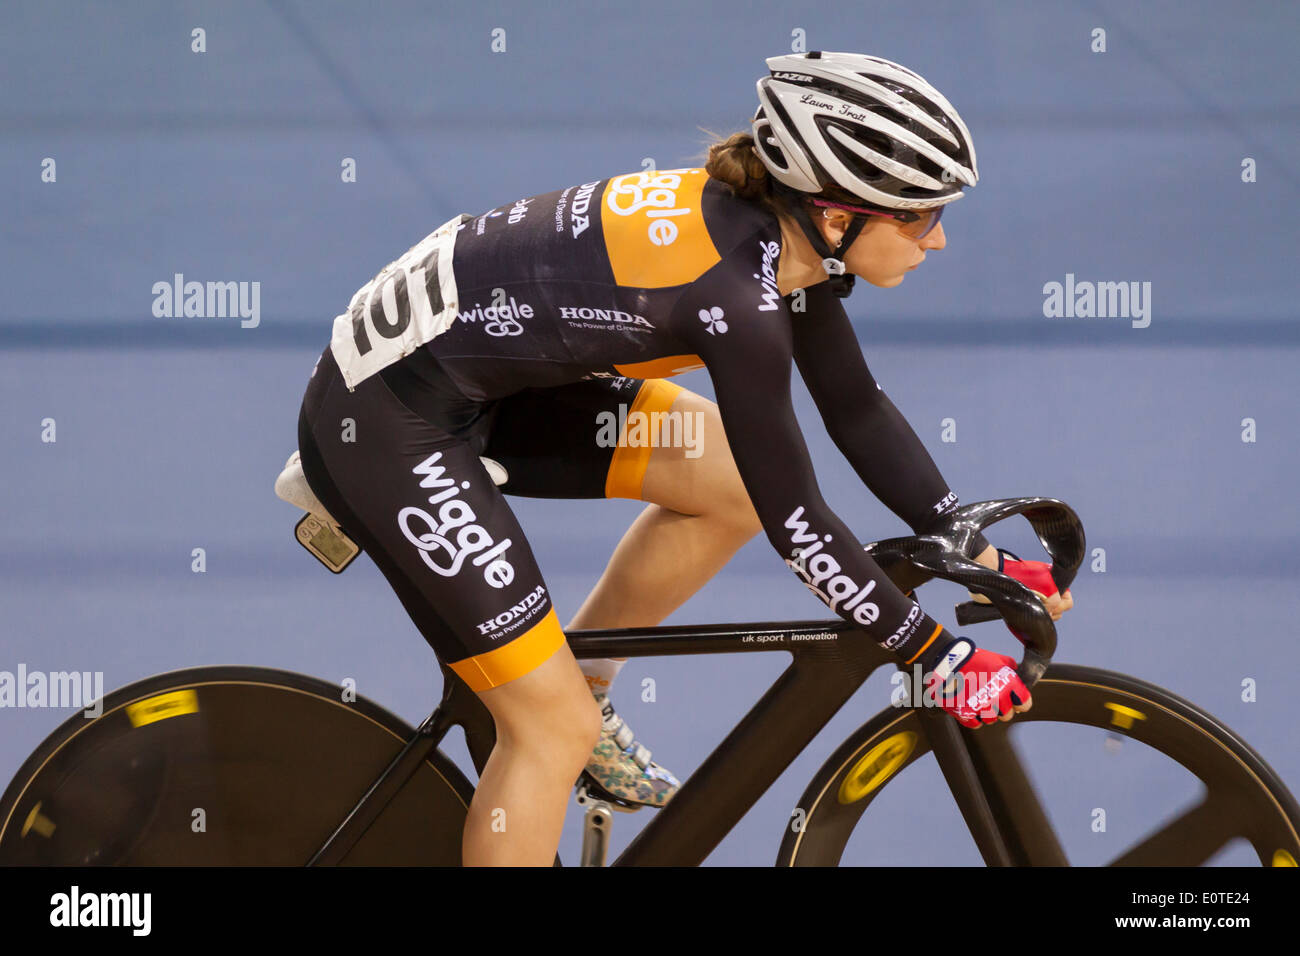 Laura Kenny (Laura Trott) konkurriert in der Frauen Omnium in Revolution 5 2014, Lee Valley Velopark, Stratford Stockbild